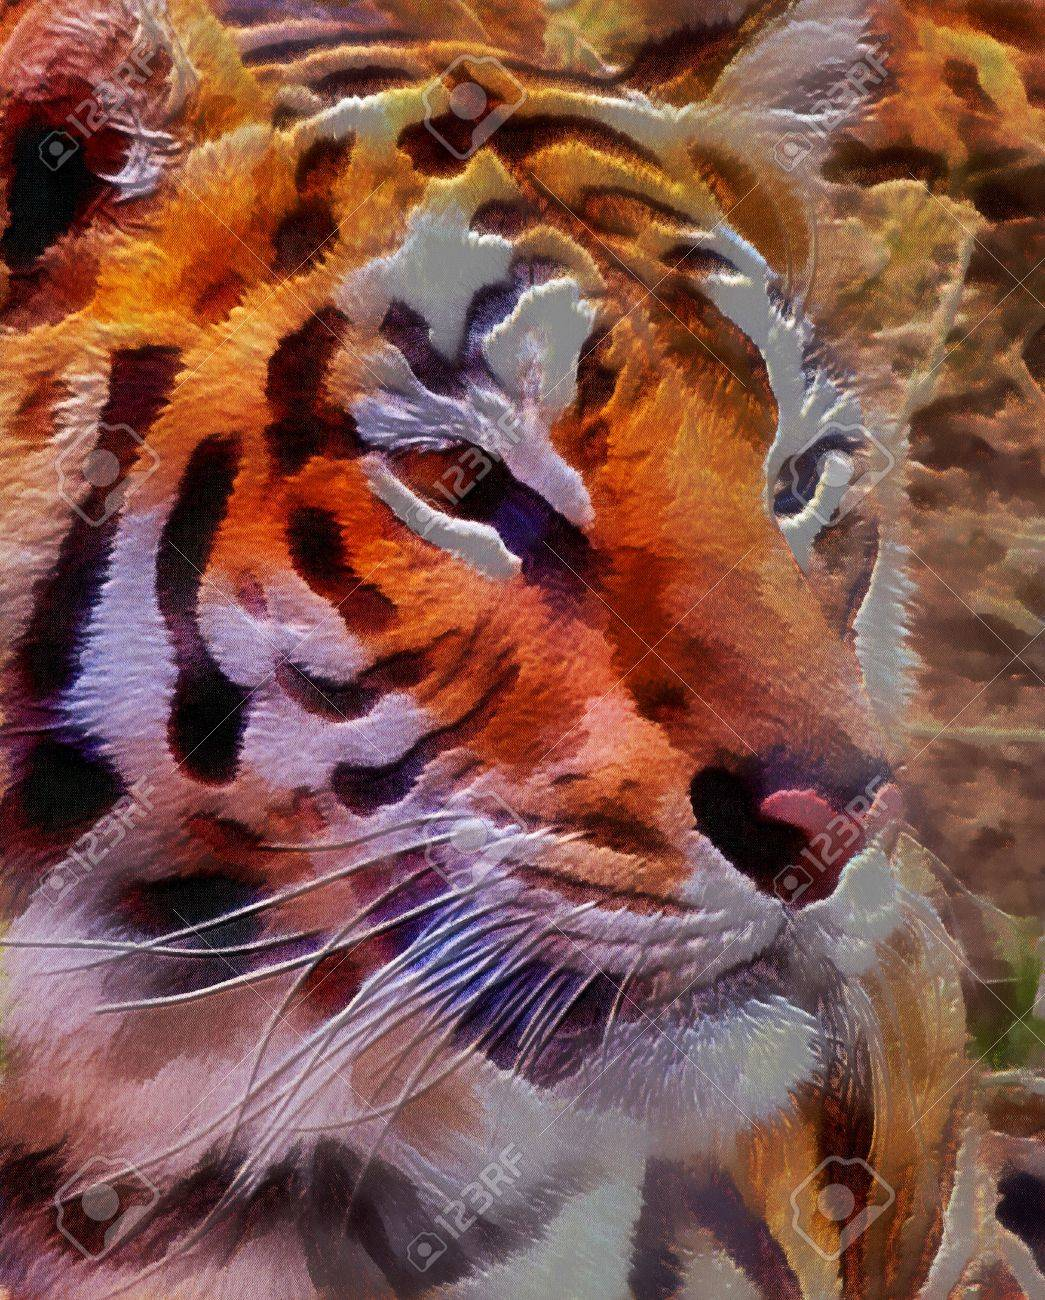 Fantasy Tiger Pictures U2013 Best Tiger Image And Photo Hd 2017